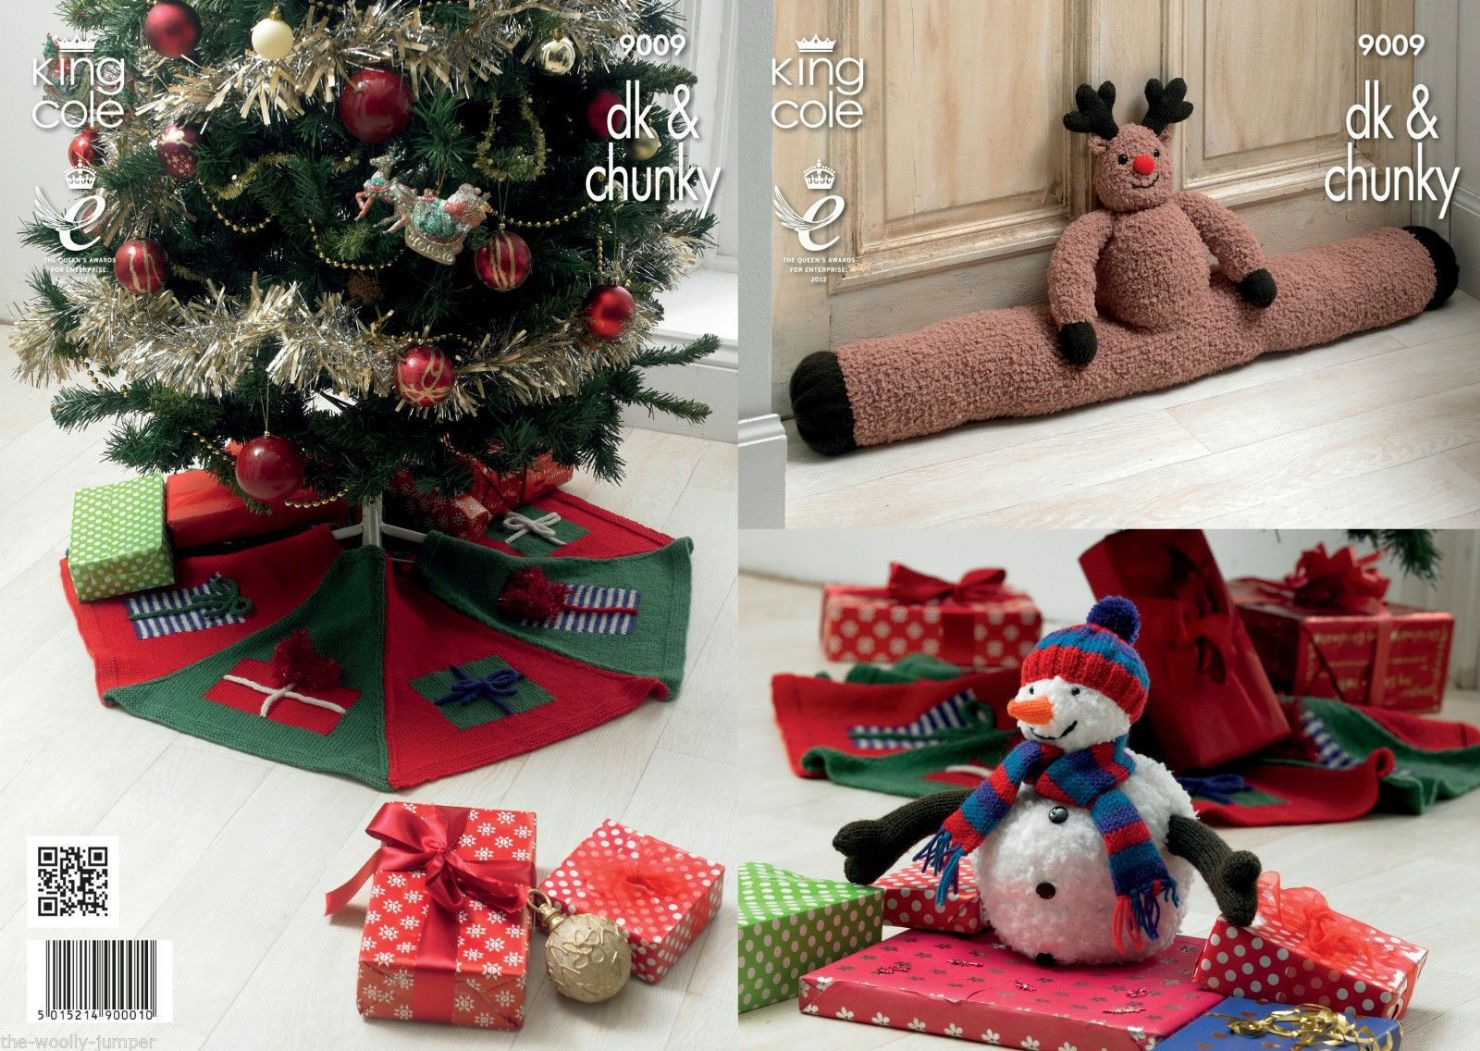 9009 King Cole Draught Rudolf Excluder Snowman Tree Skirt Knitting